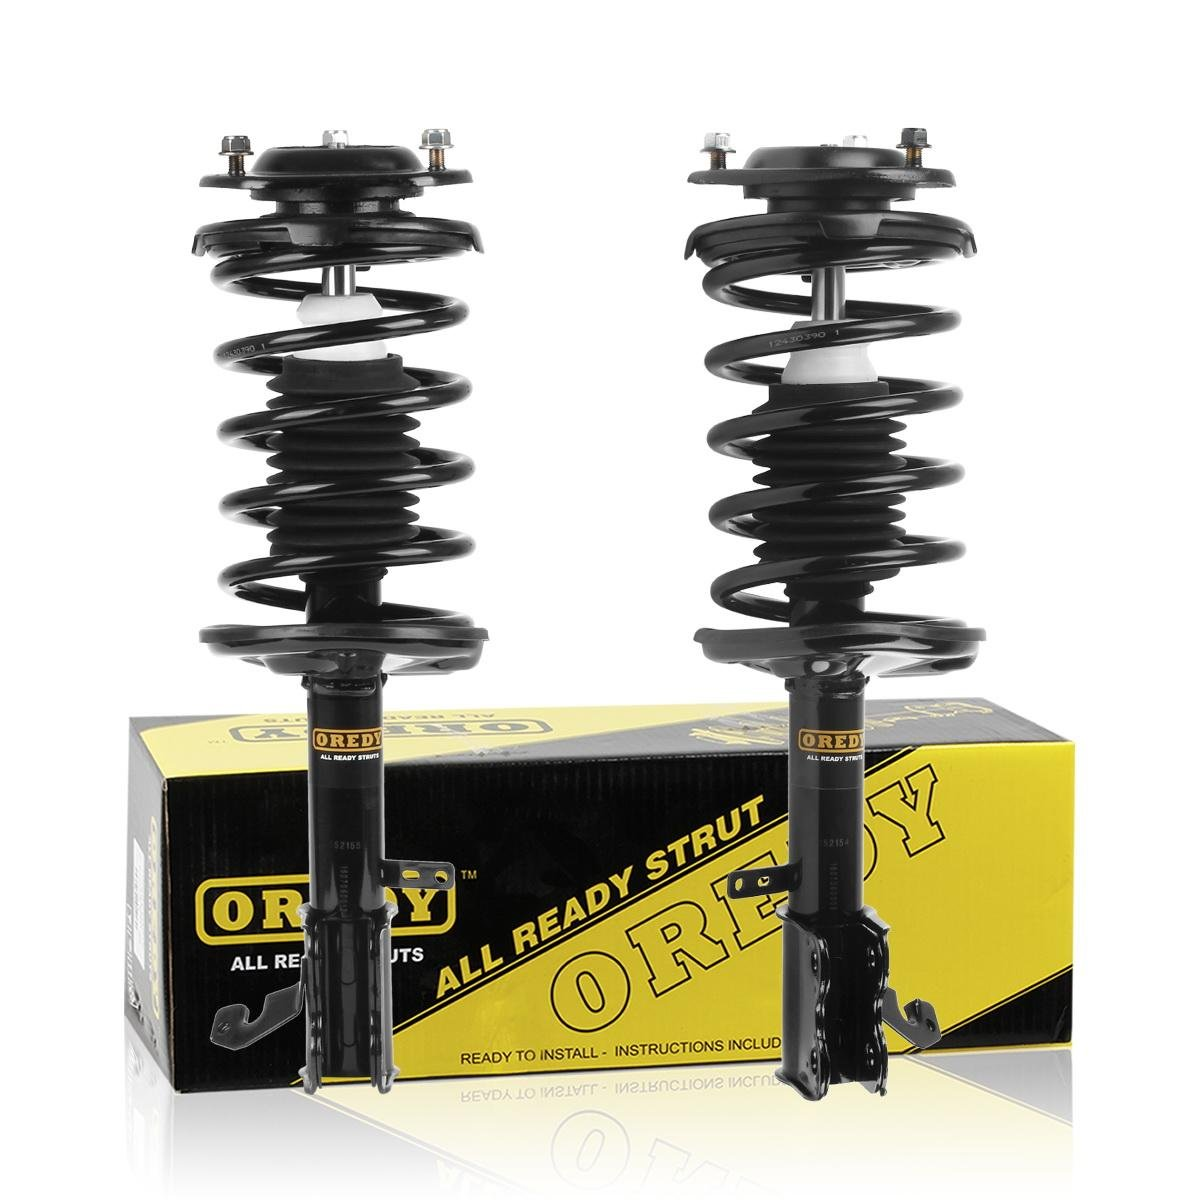 OREDY Front Pair 2Pieces Complete Struts Assembly Shock Coil Spring Assembly Kit 171951 171952 11442 11441 Compatible with Geo Prizm 1993 1994 1995 1996 1997